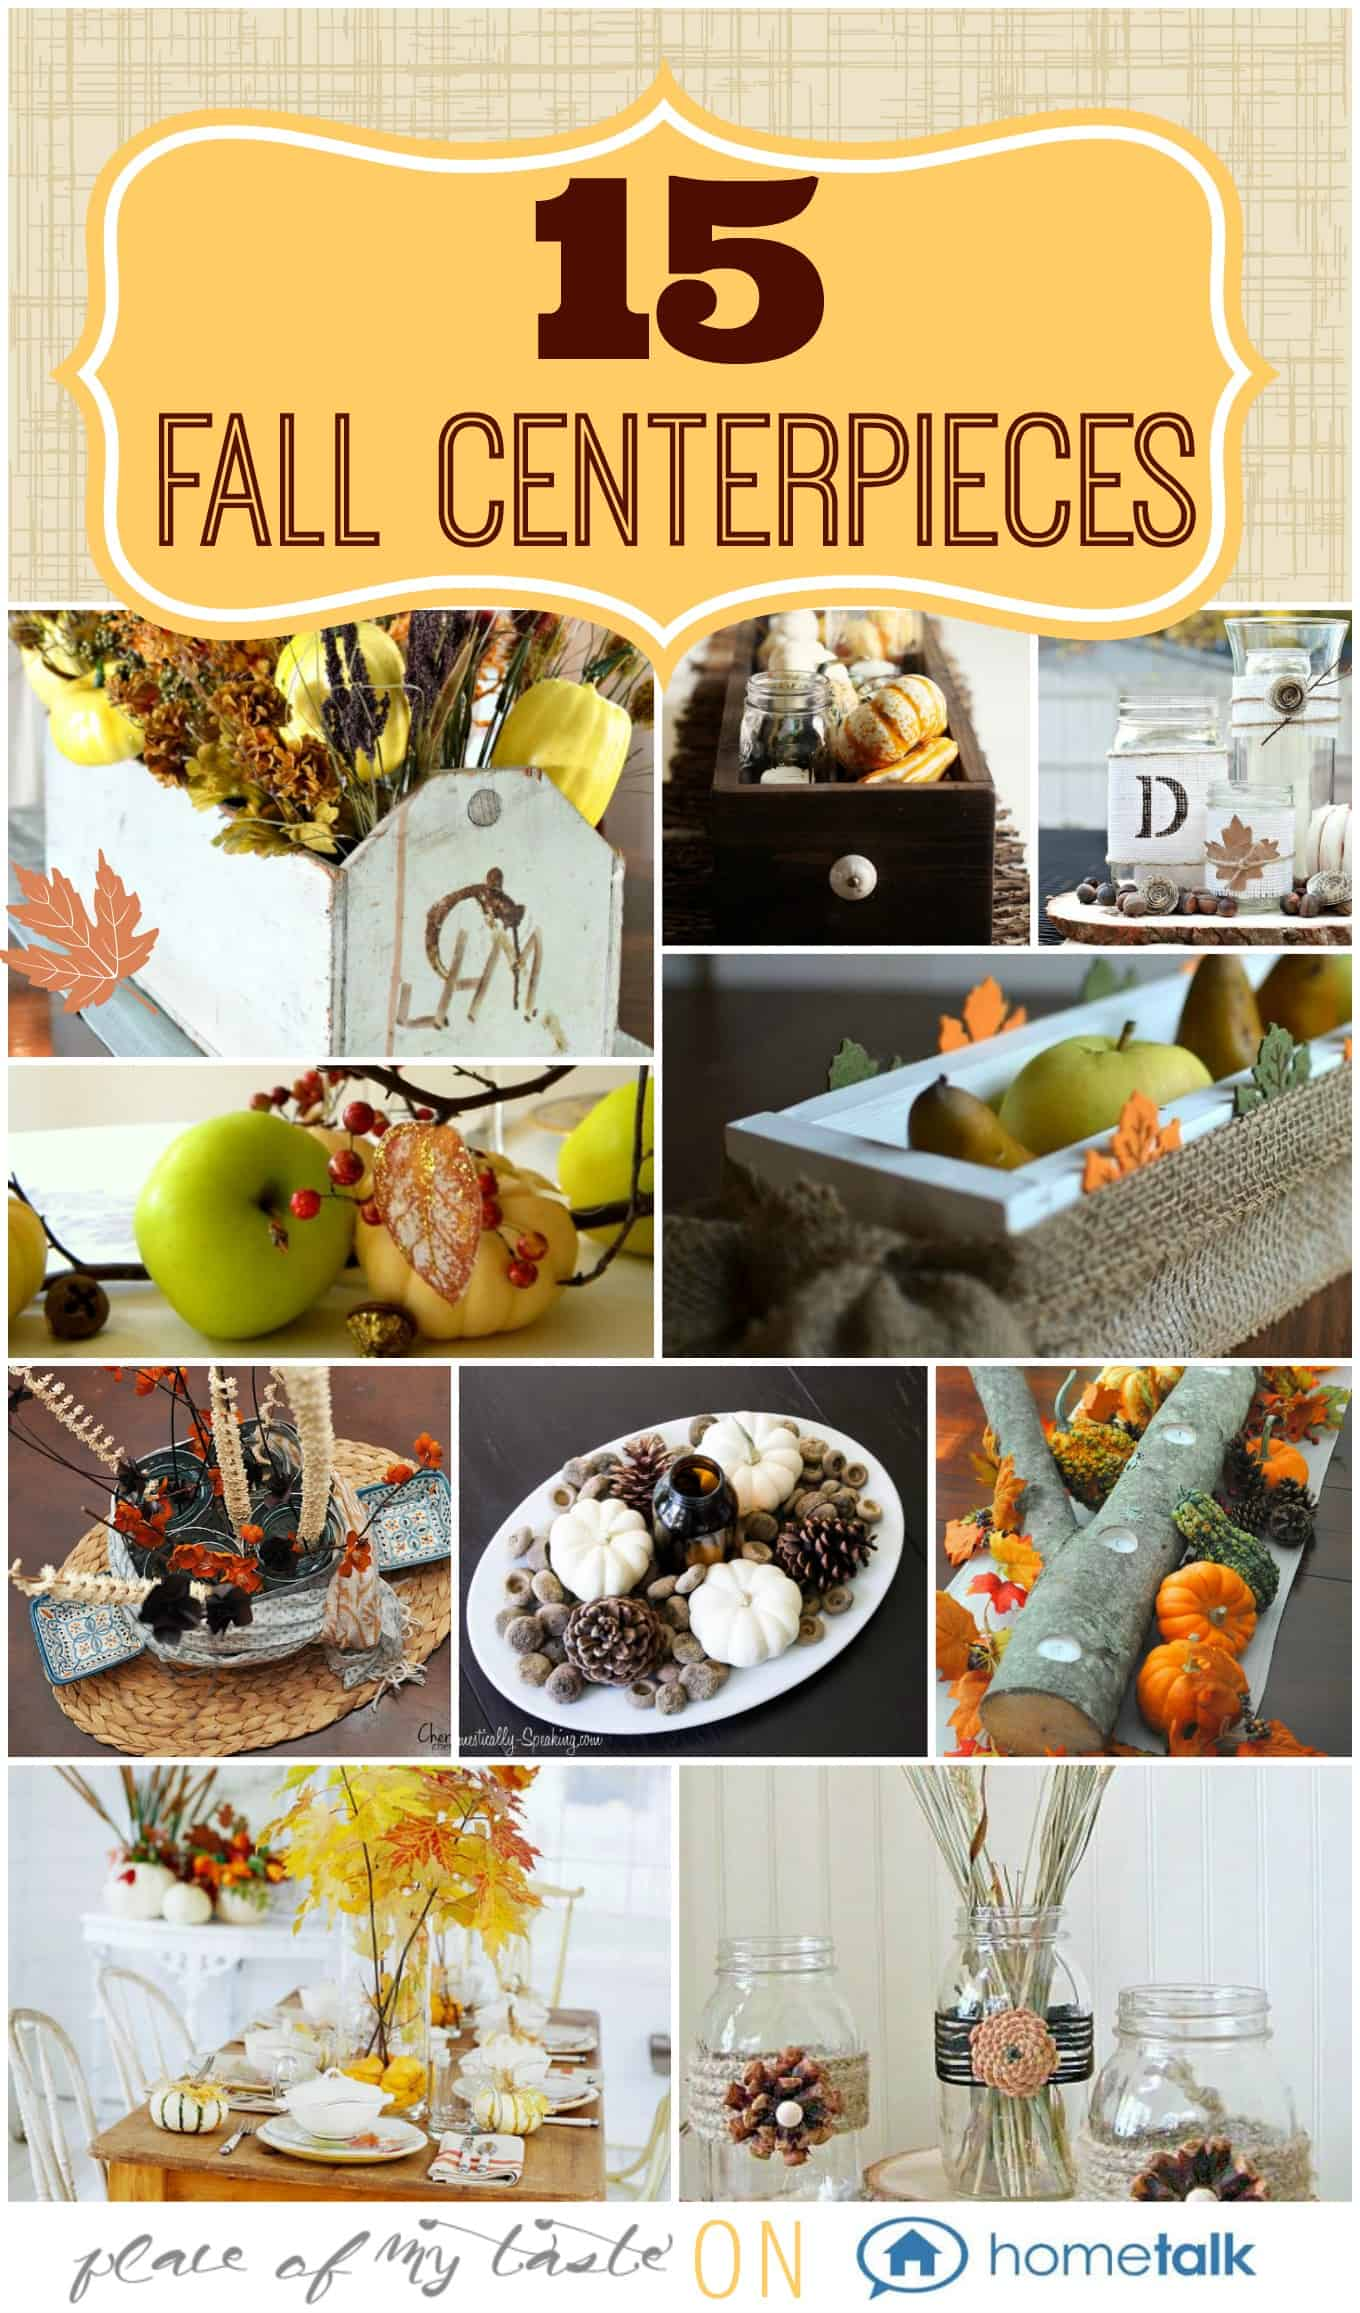 15 FALL CENTERPIECES  Place Of My Taste for Hometalk